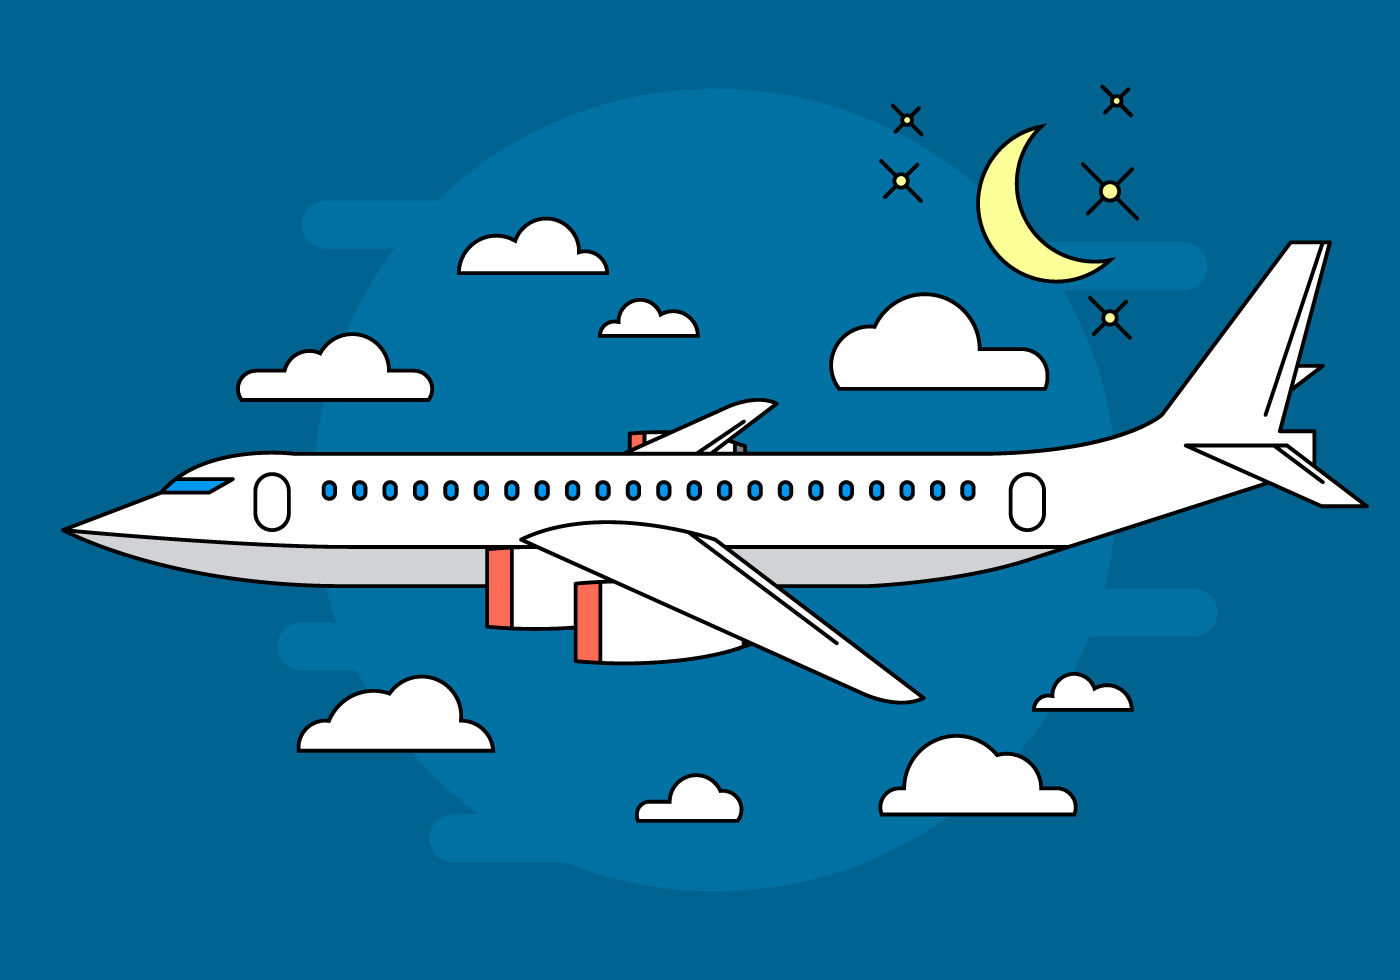 Airplane Vector Illustration Download Free Vector Art